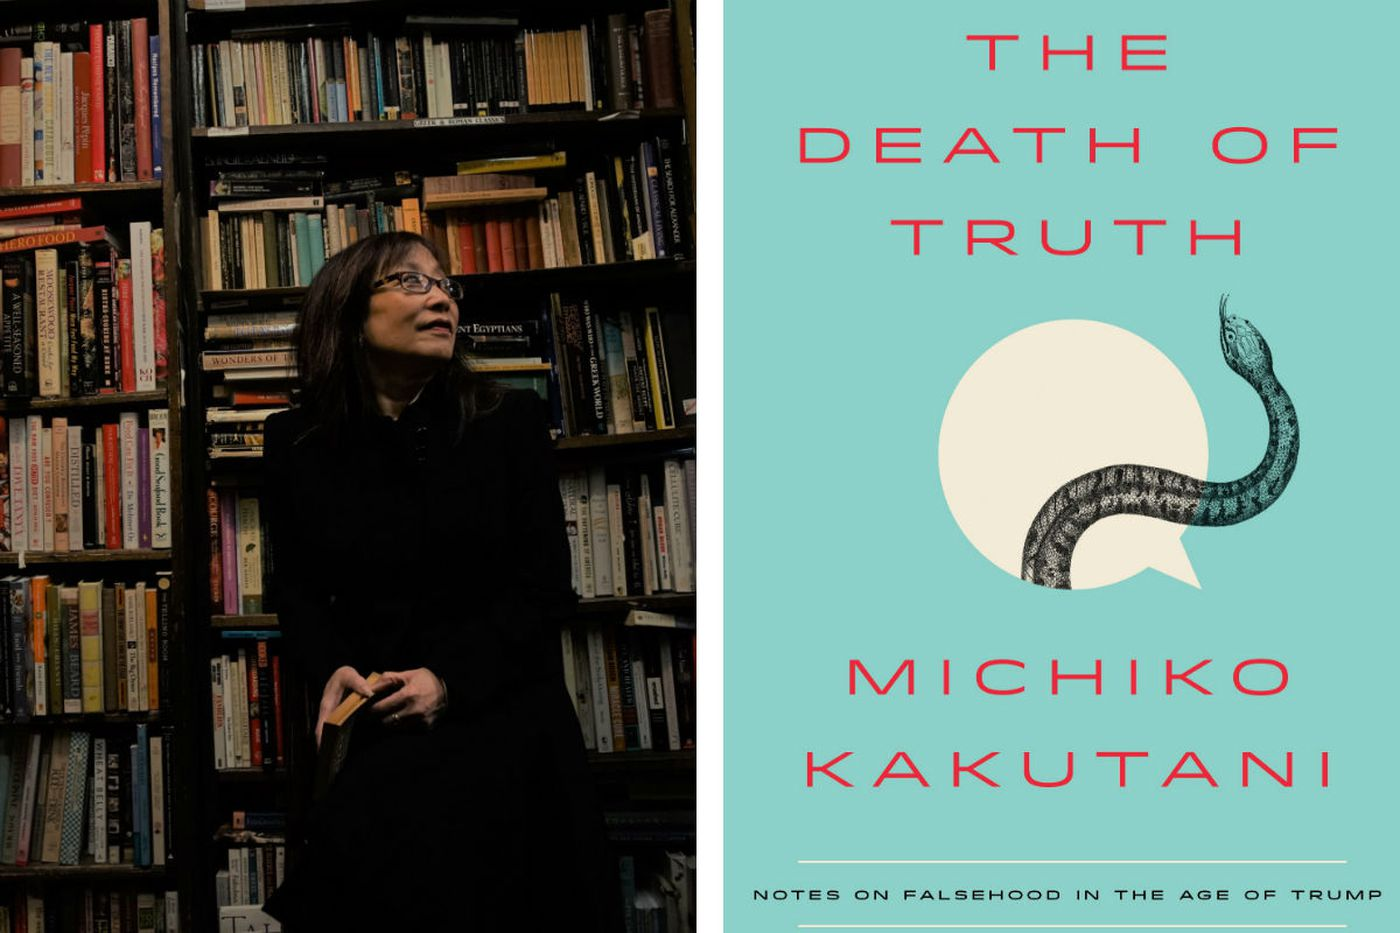 Michiko Kakutani's 'Death of Truth': Losing everything we once shared, including reality